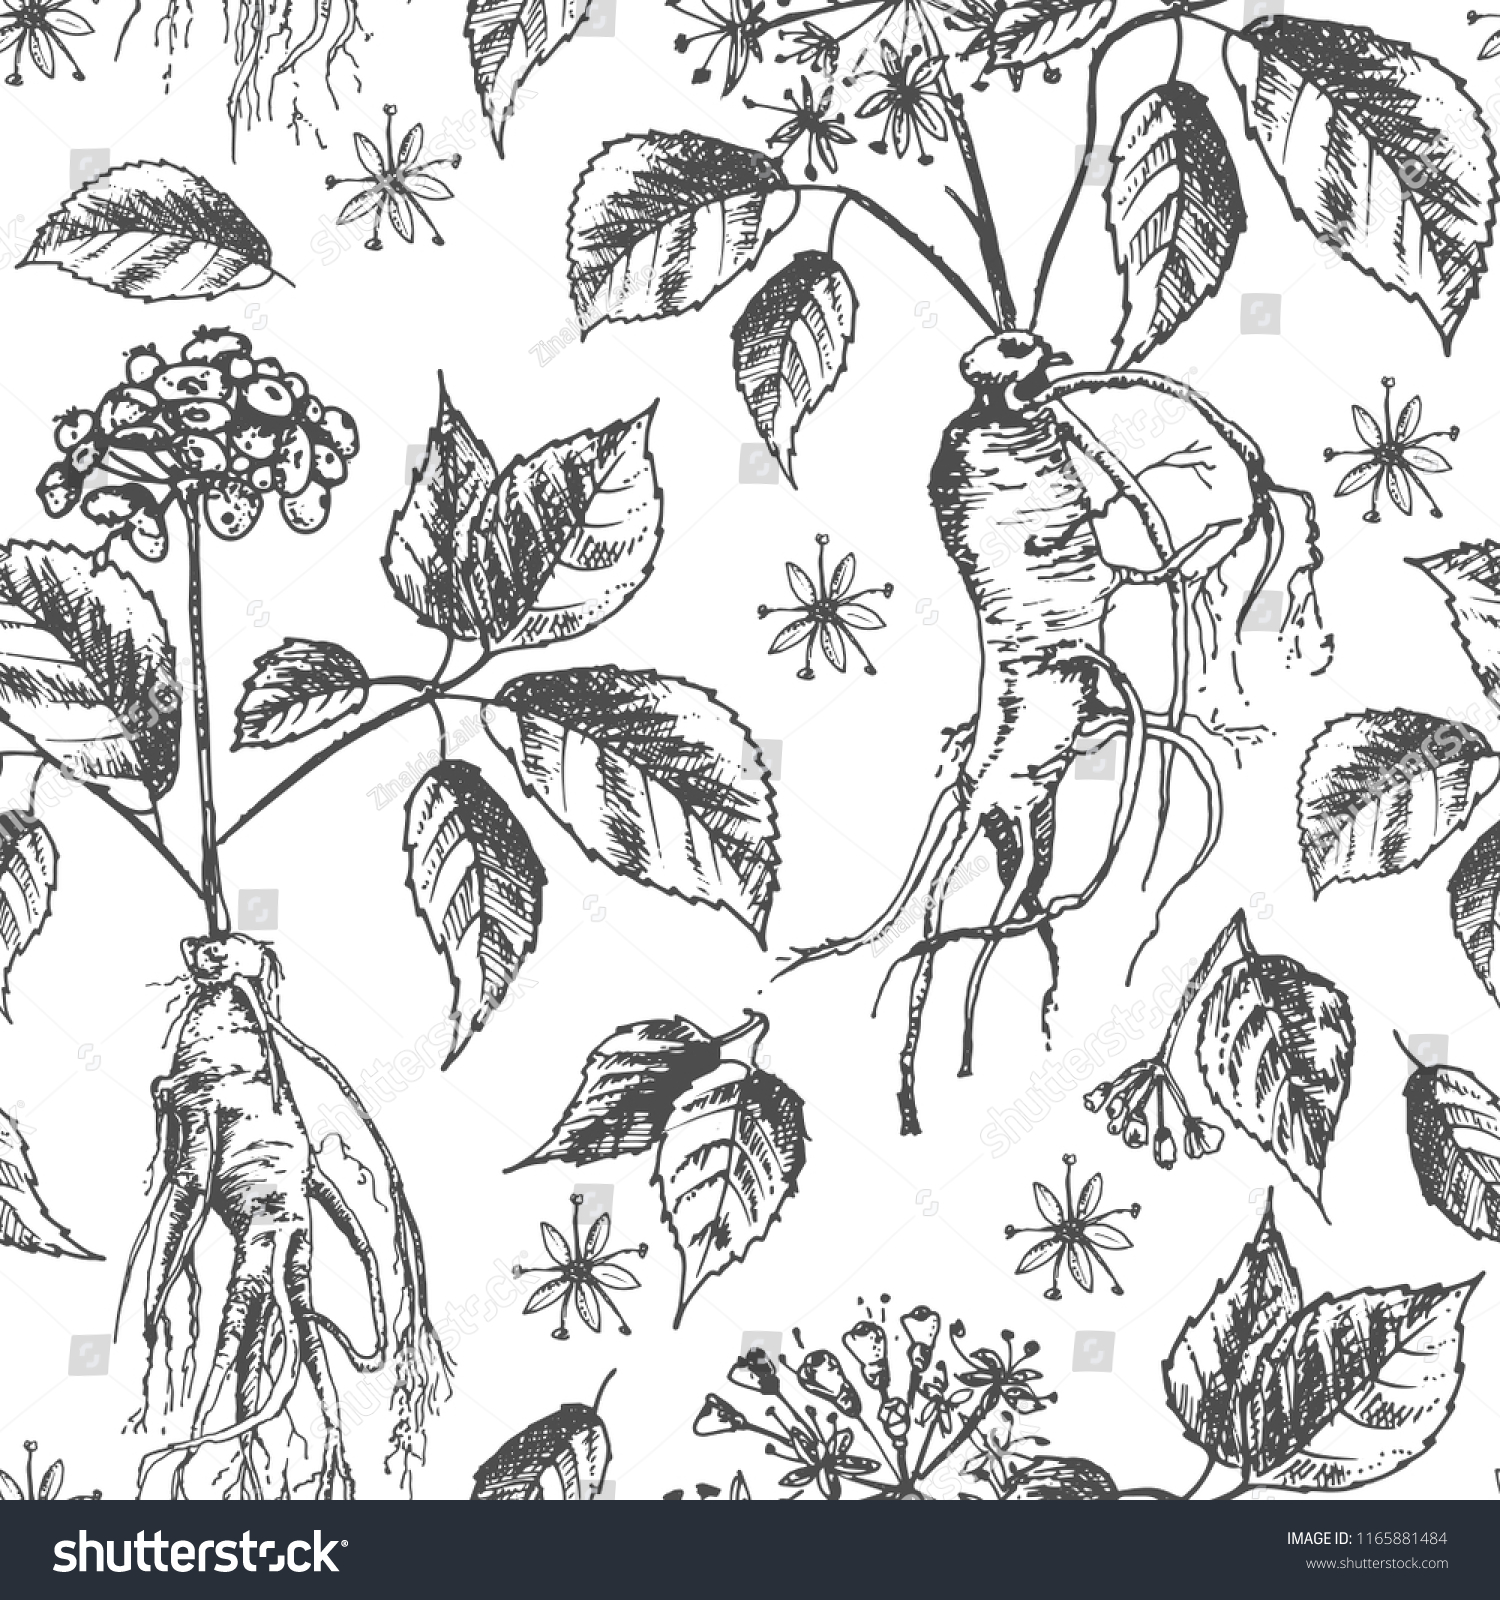 Realistic Botanical Ink Sketch Seamless Pattern Stock Vector